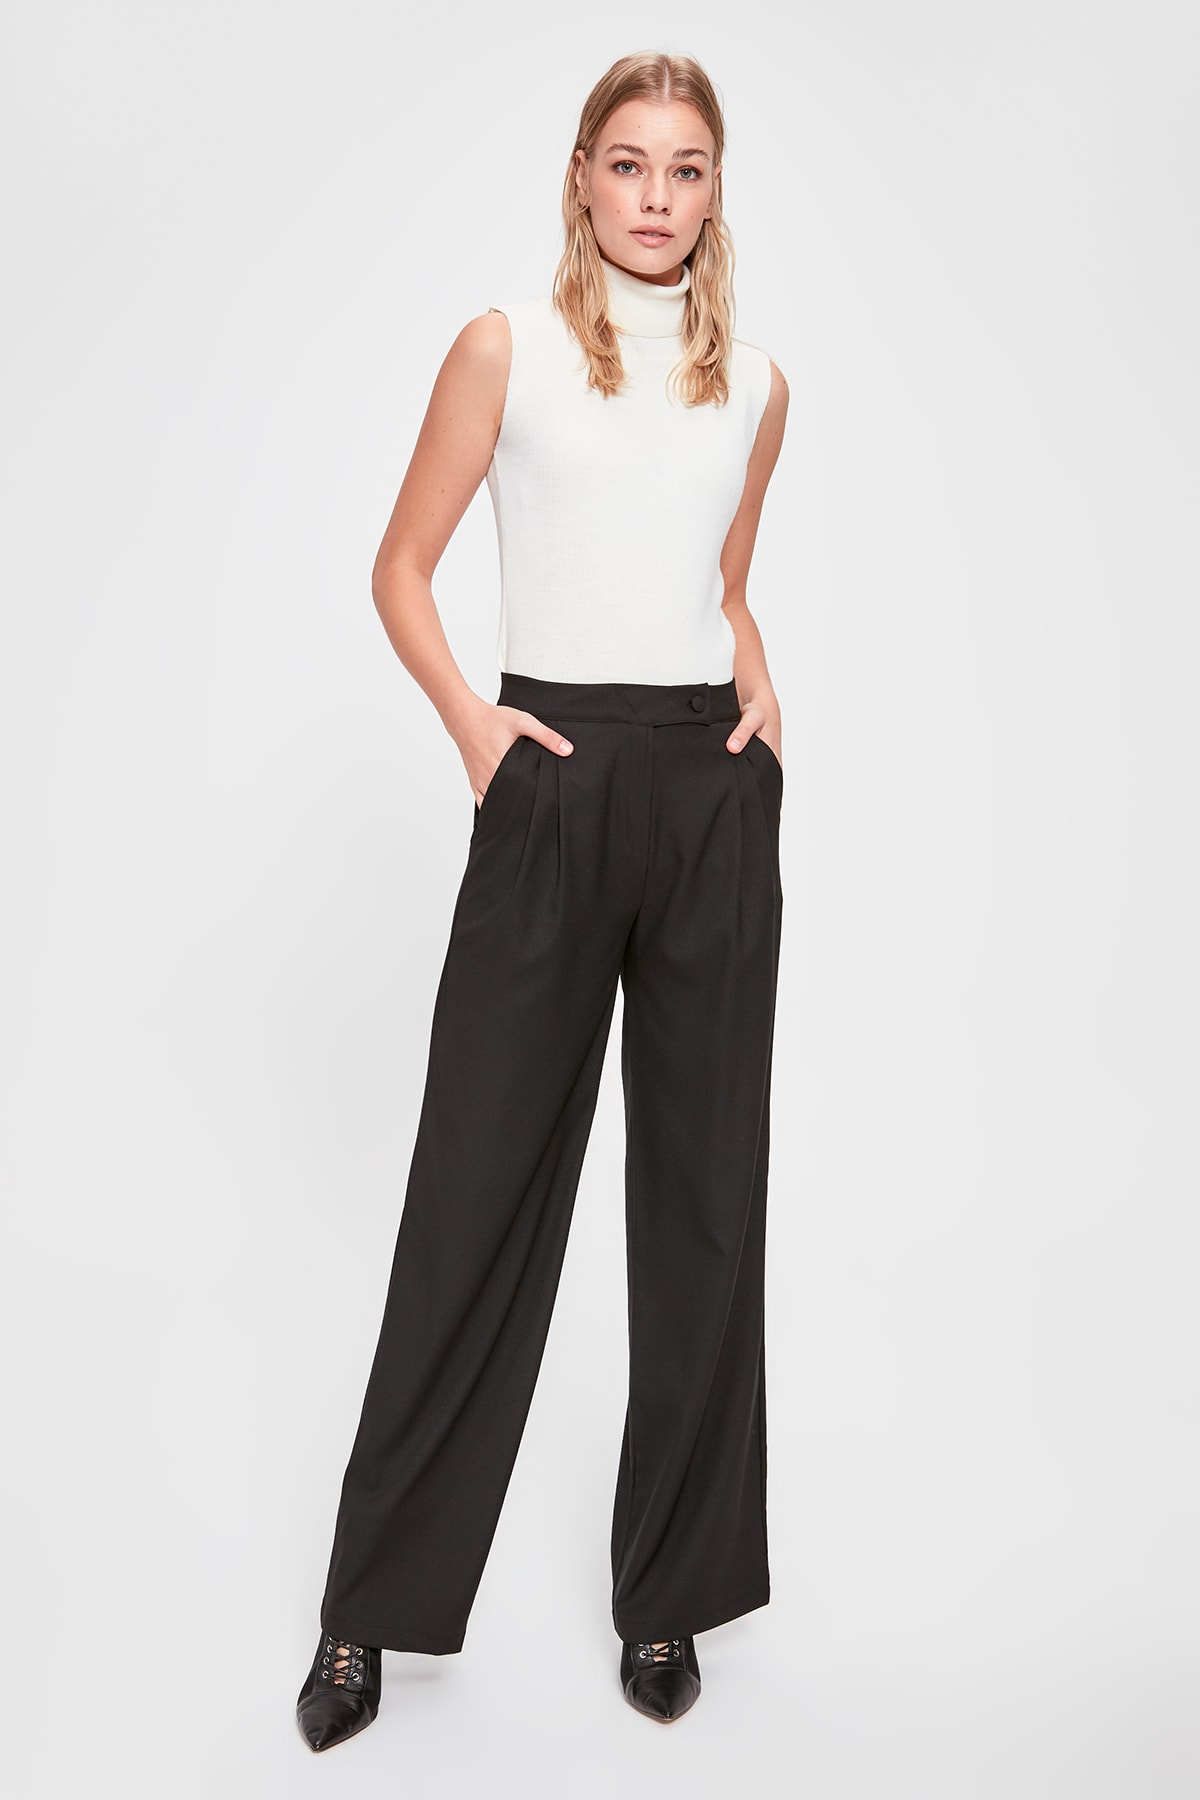 Trendyol Basic Pants TWOAW20PL0426